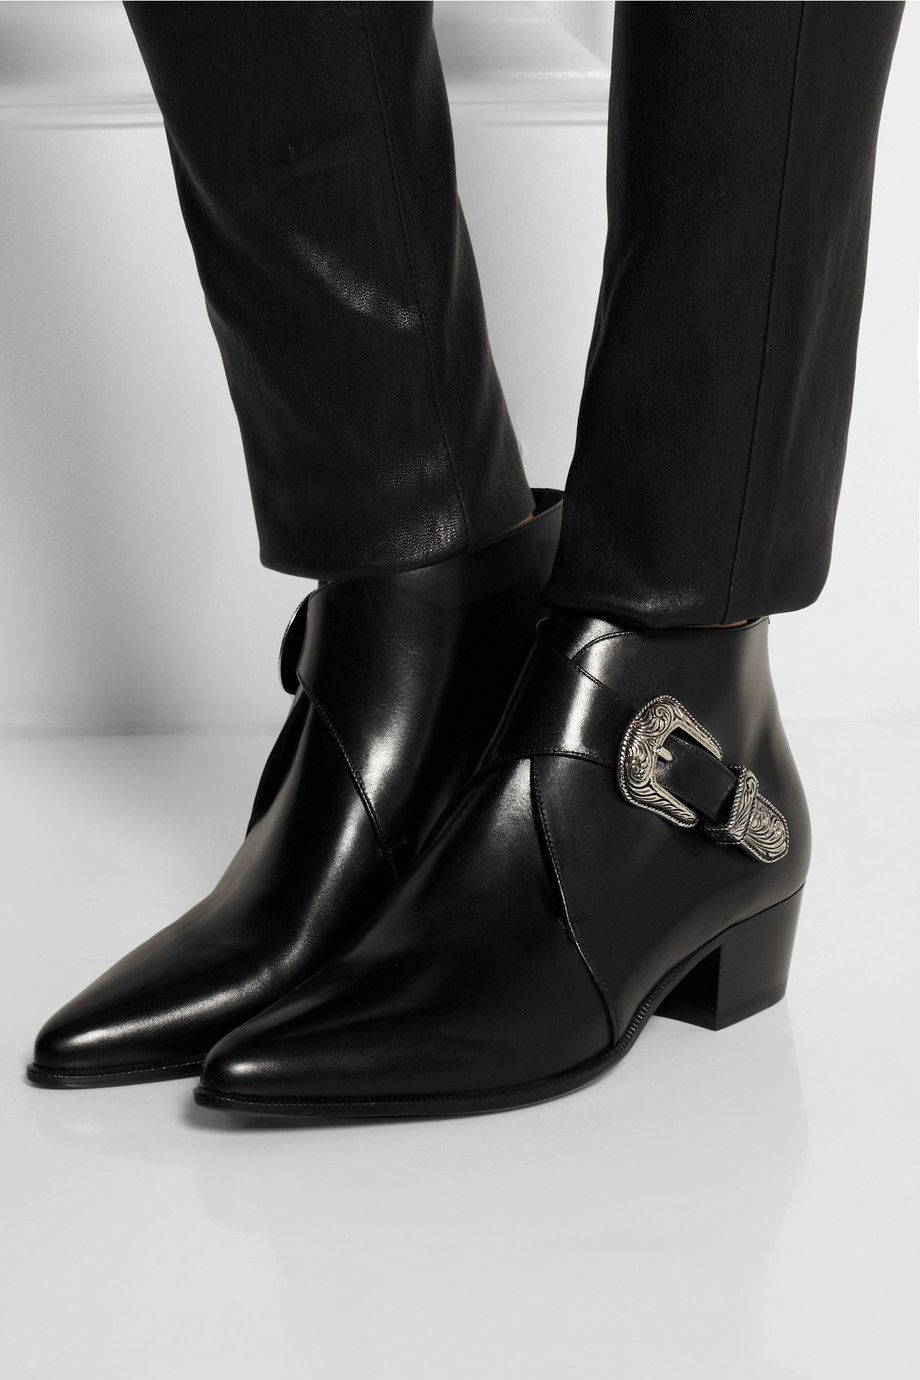 Saint Laurent pointed ankle boots amazing price online Alhyoua6